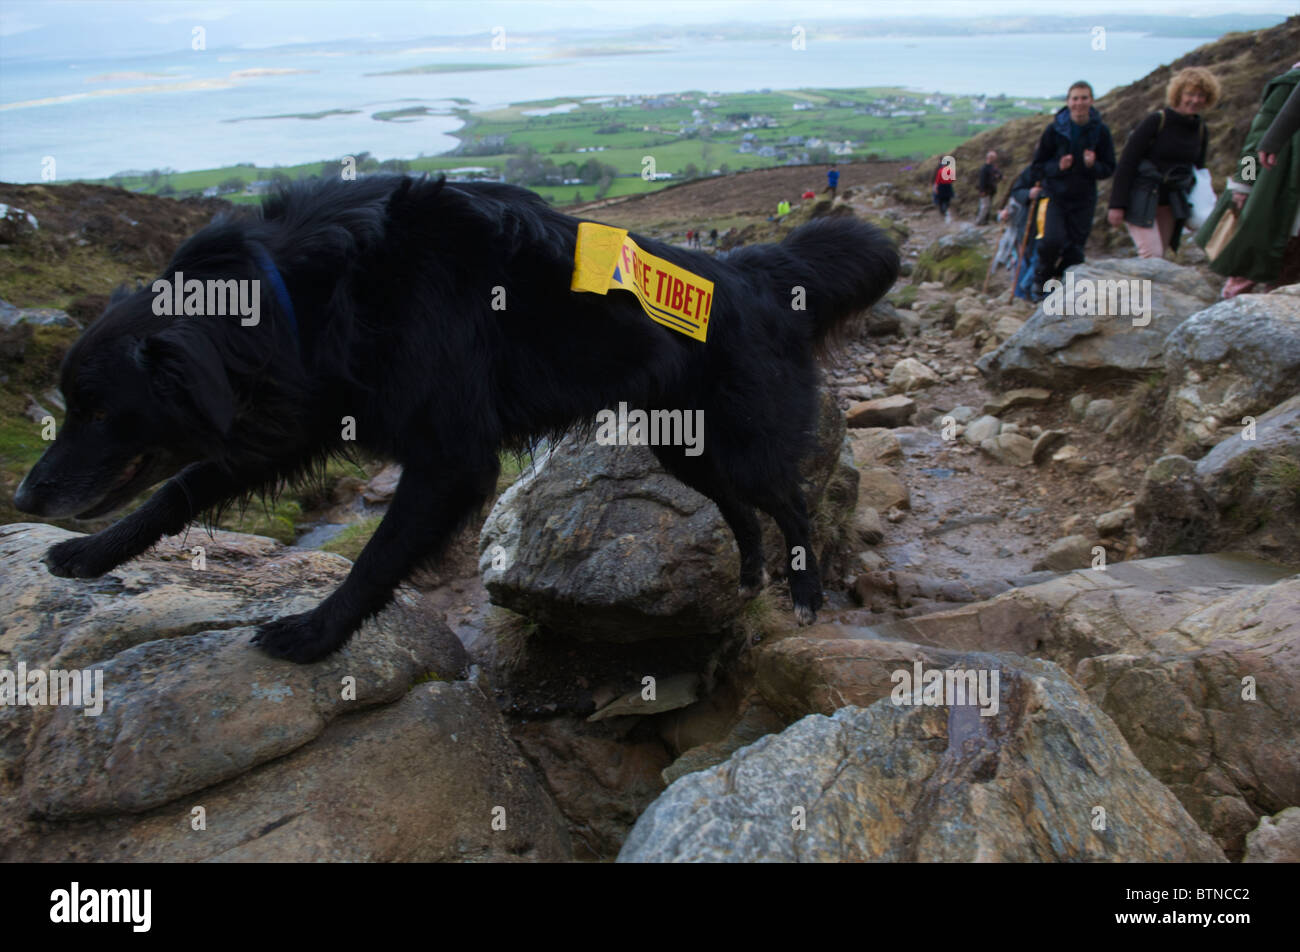 A black dog with a Free Tibet sign. - Stock Image